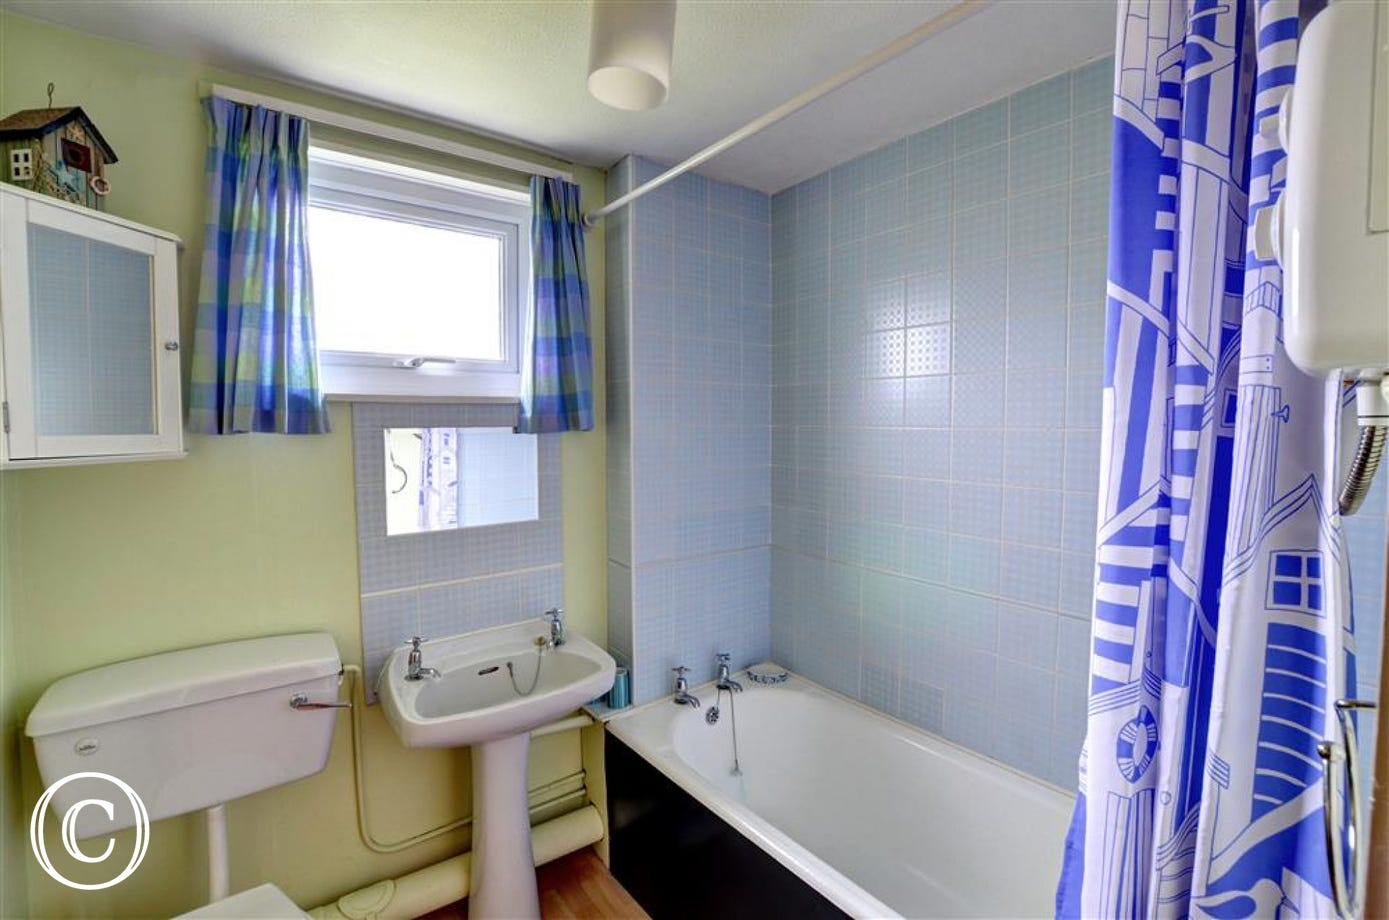 The bathroom, in shades of pastel blue and yellow, has an electric shower over the bath